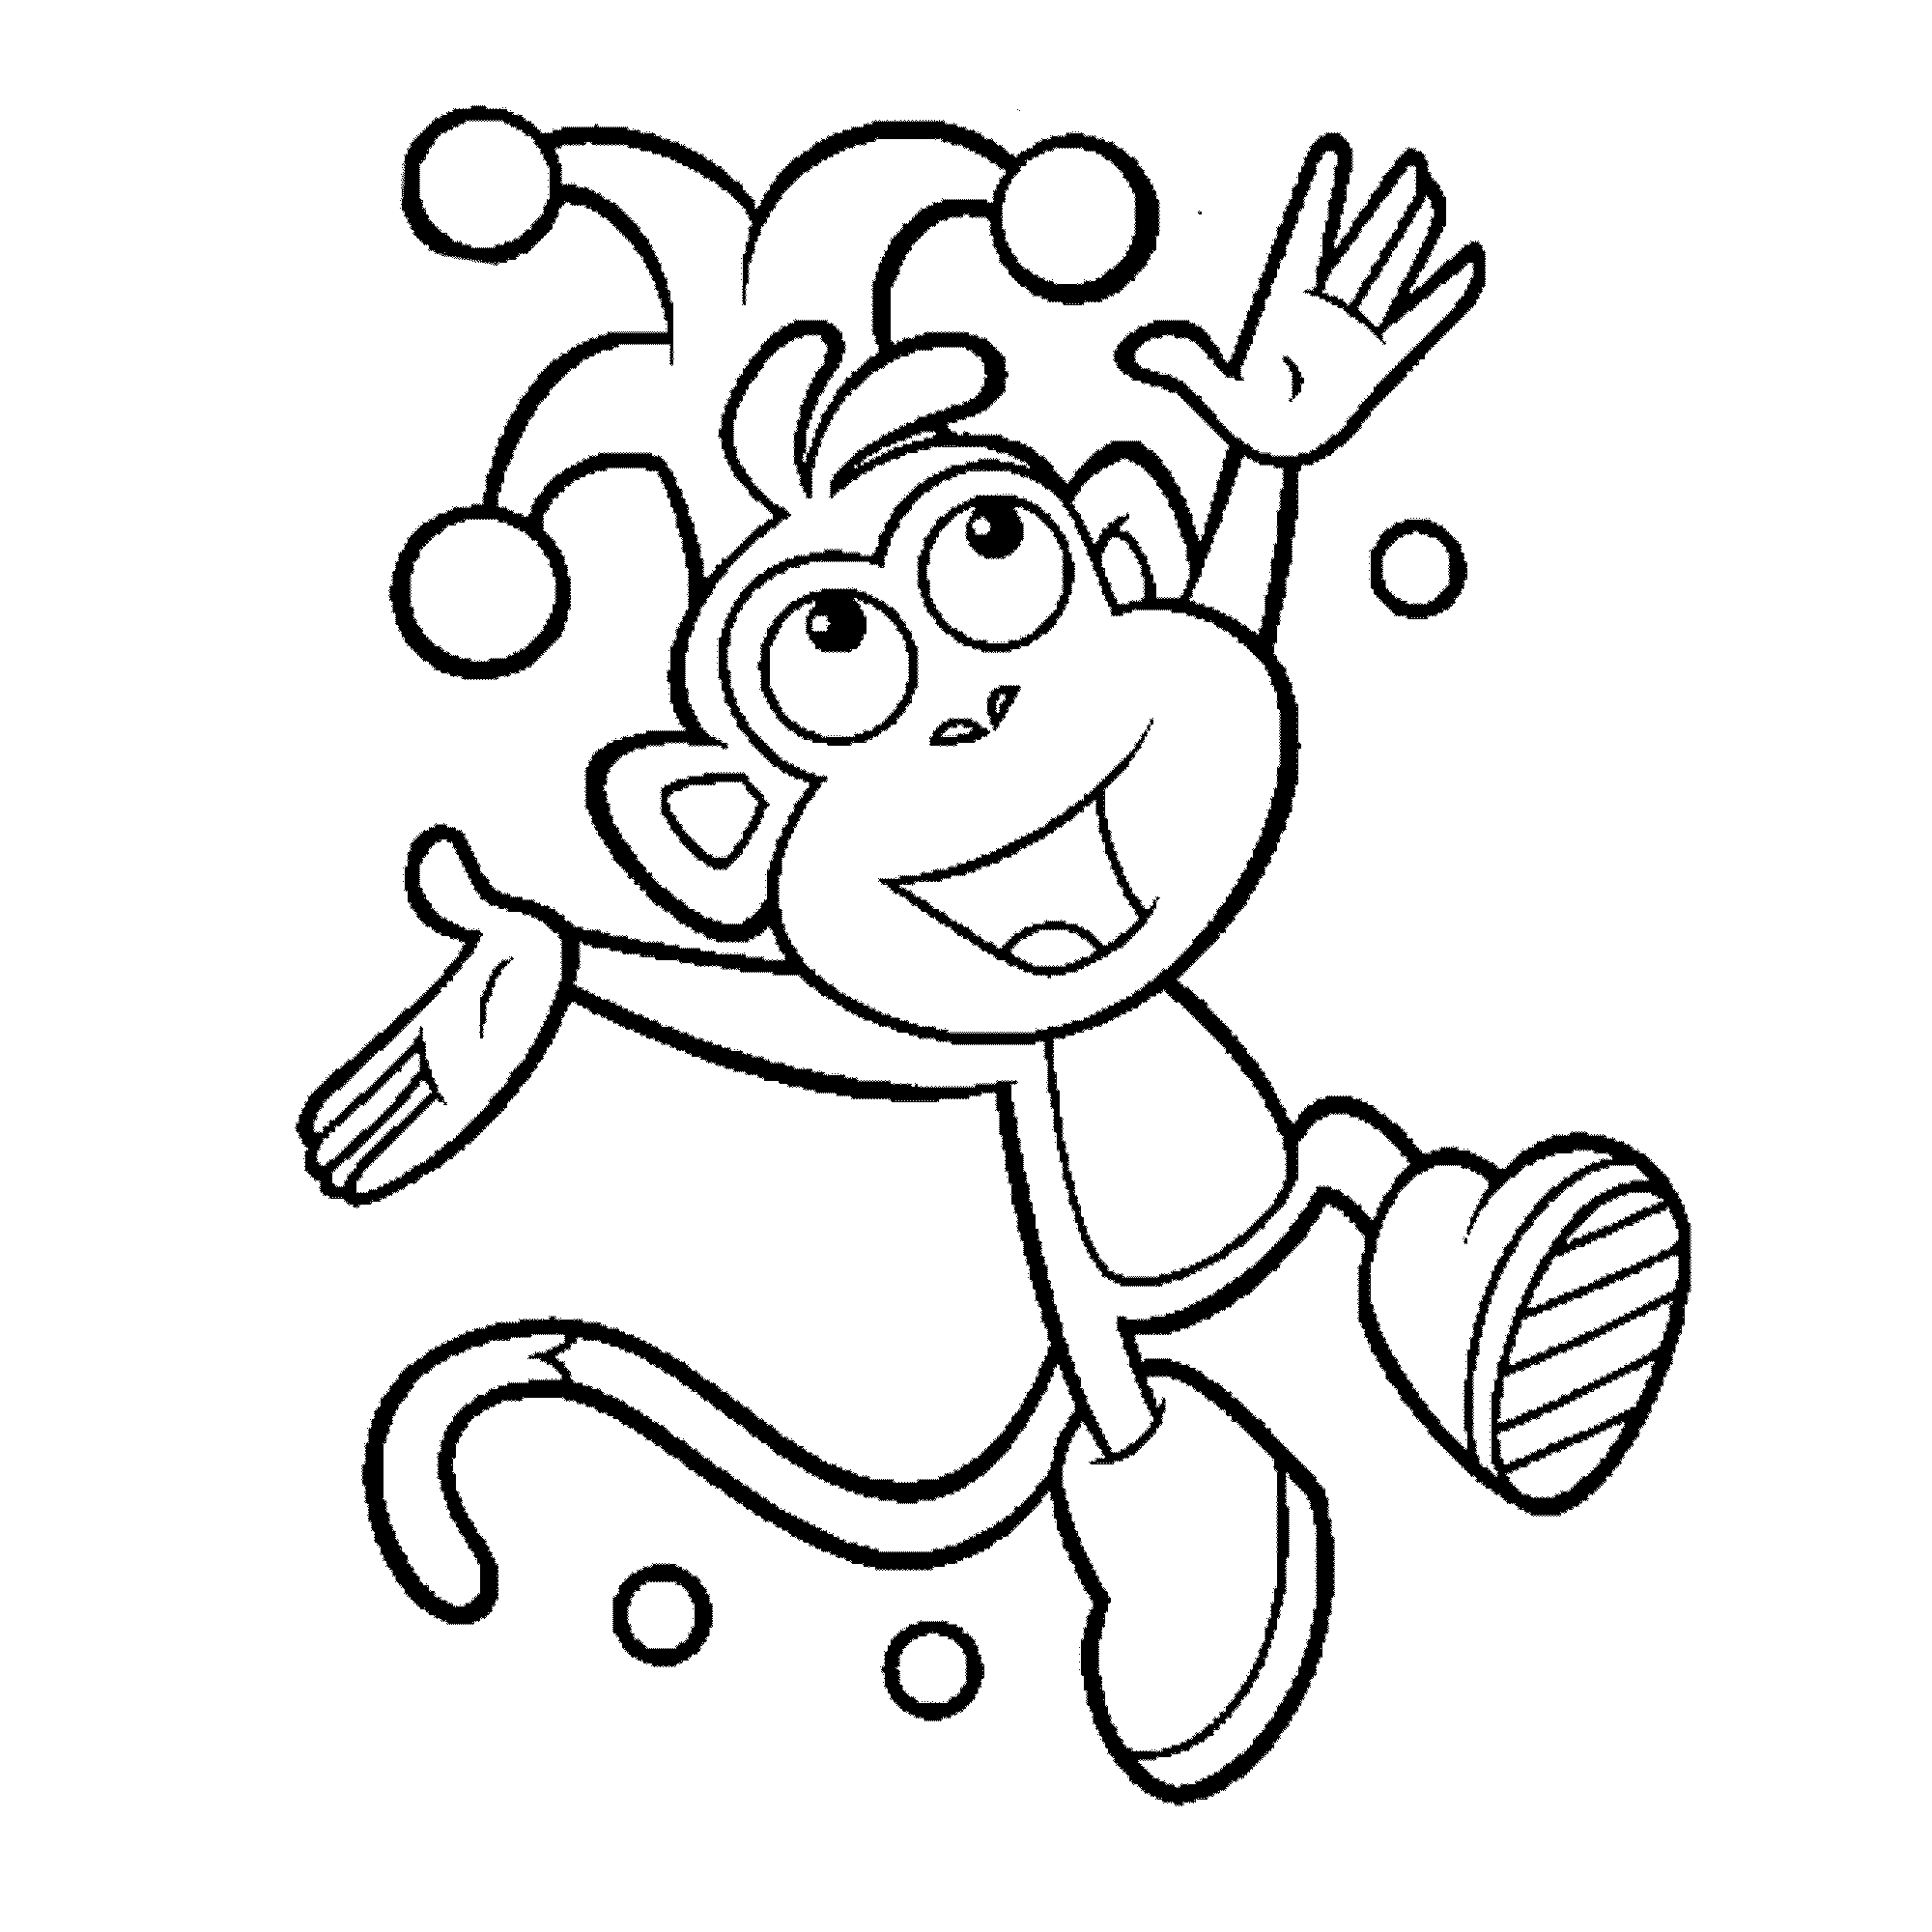 educational coloring pages | Print & Download - Dora Coloring Pages to Learn New Things